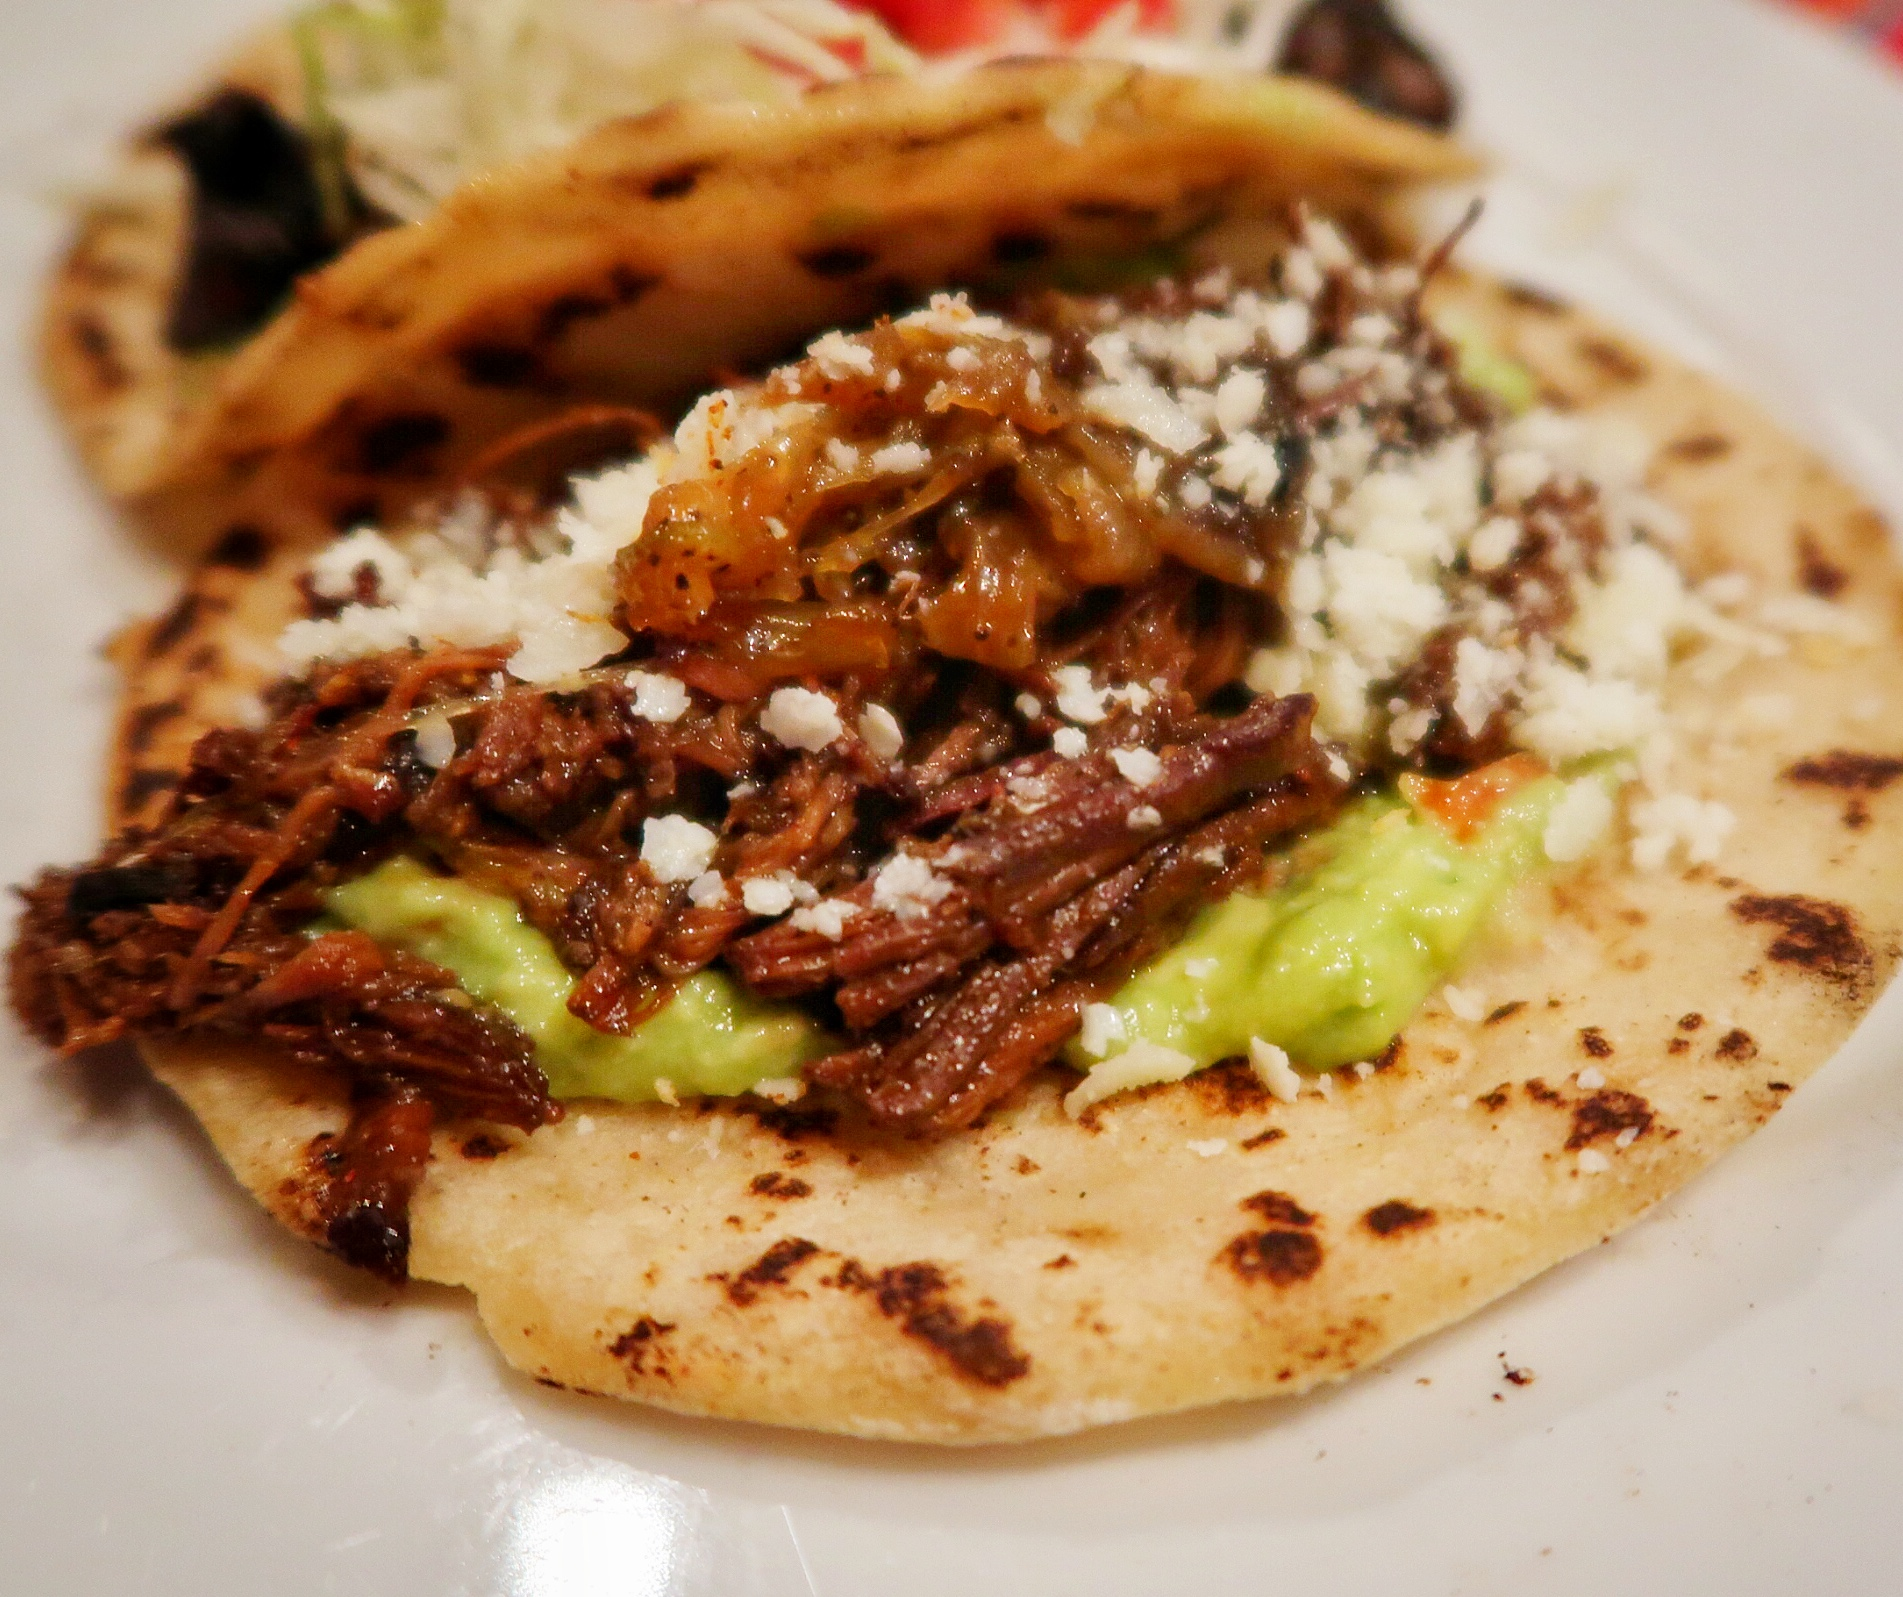 Beef Barbacoa taco - Tender house smoked beef brisket rubbed in ancho chile rub, caramelised onions, cotija cheese and guacamoles on a corn or flour tortilla